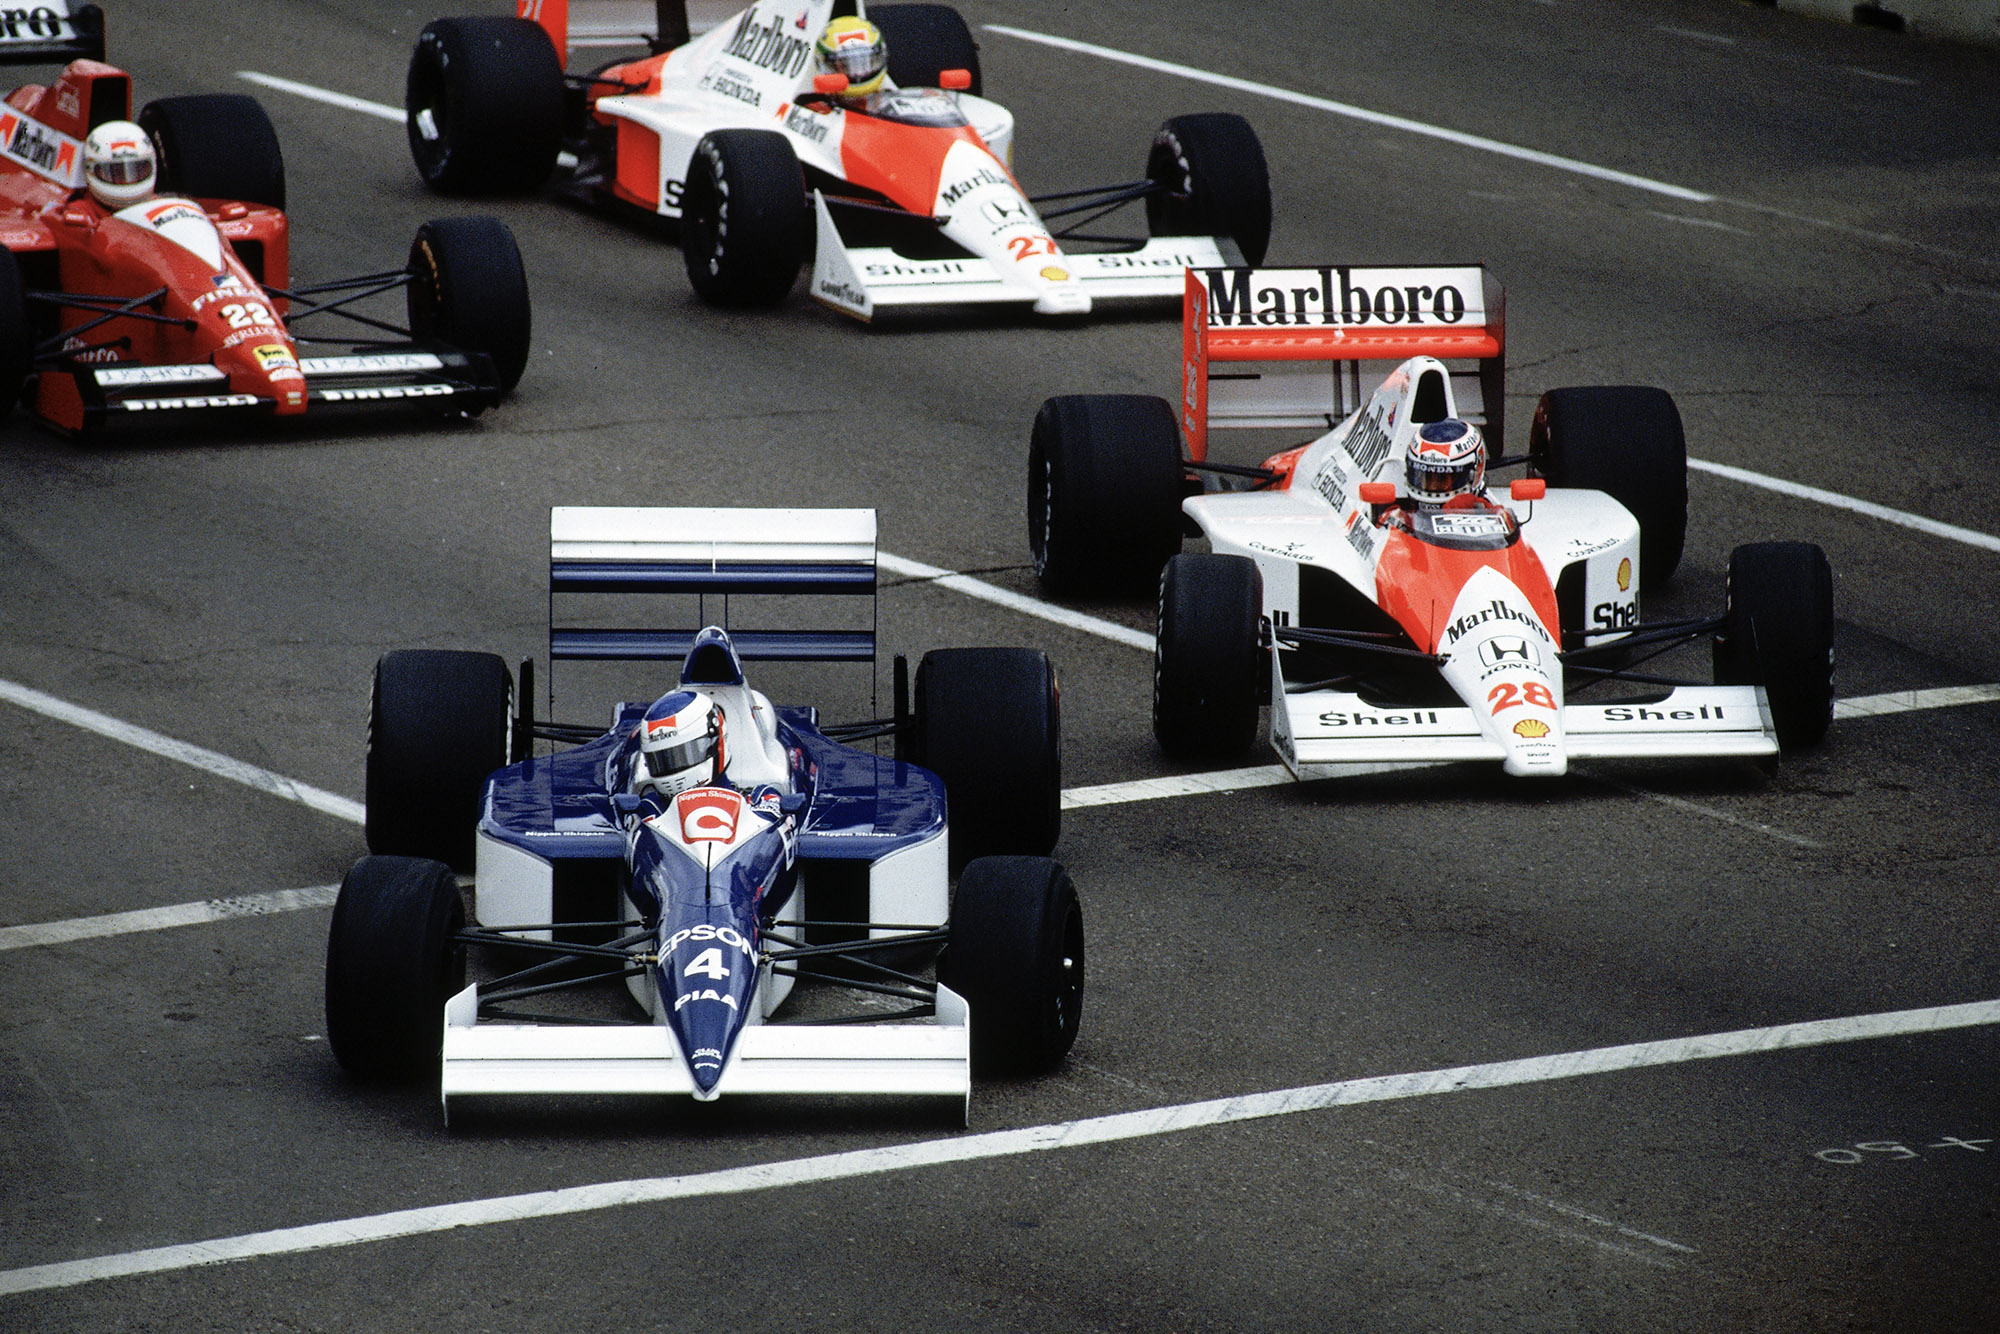 Jean Alesi dives inside Gerhard Berger to take the lead of the 1990 US Grand Prix in Phoenix